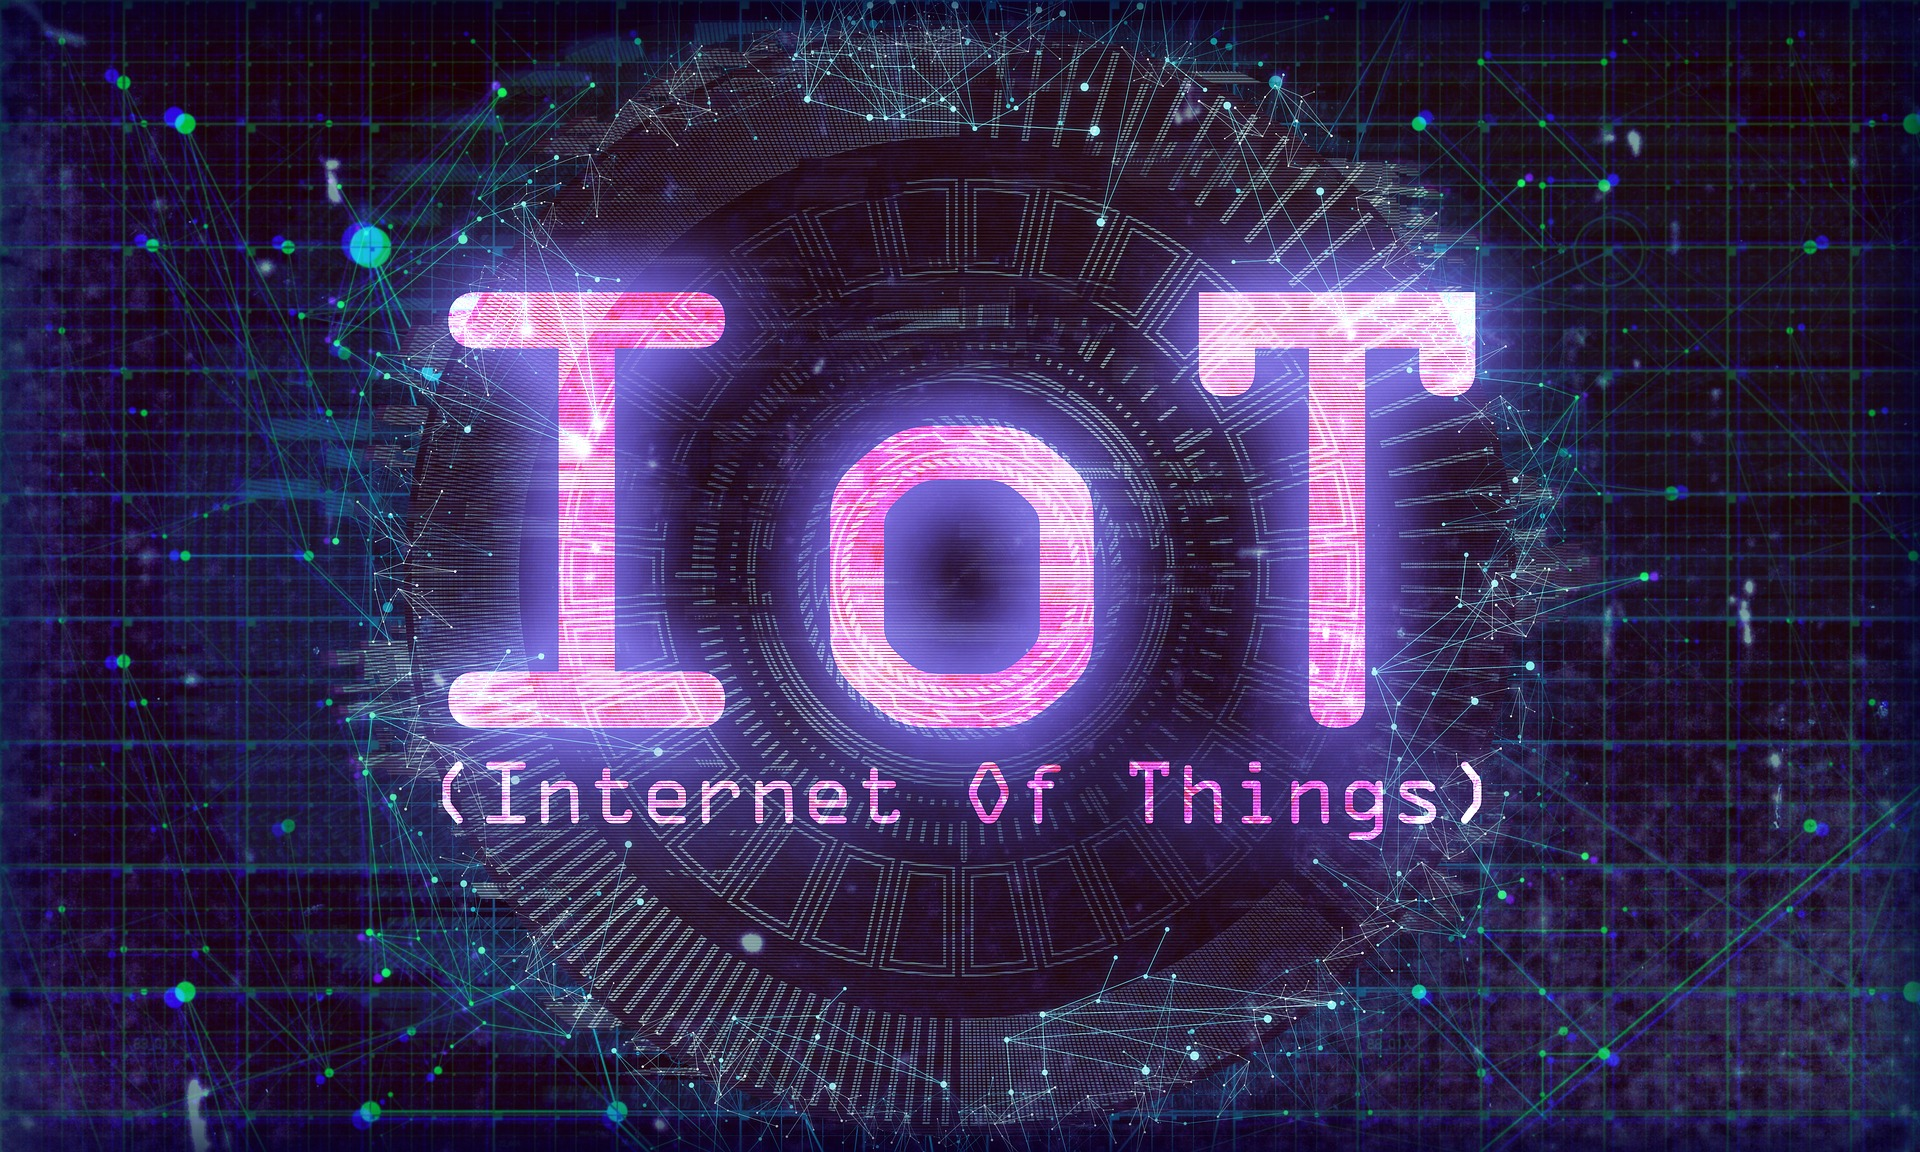 4 critical security threats faced by the Internet of Things (IoT) ecosystem